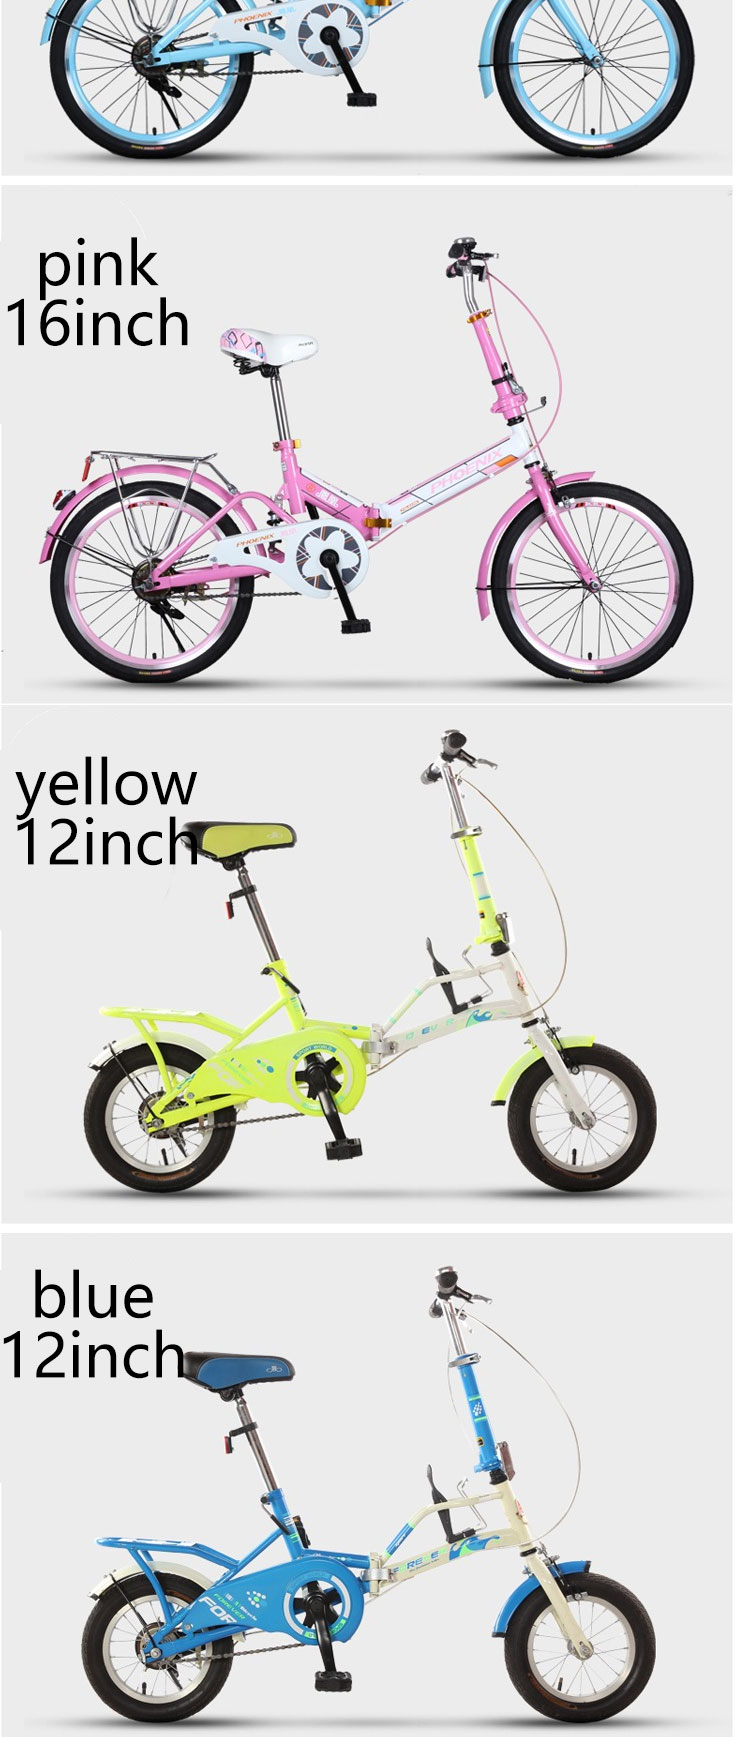 H569b5a27adda4d40b032d9c4a155cb3fw [TB01]20 inch folding bicycle bicycle shock absorber bicycle men and women student car leisure bicycle